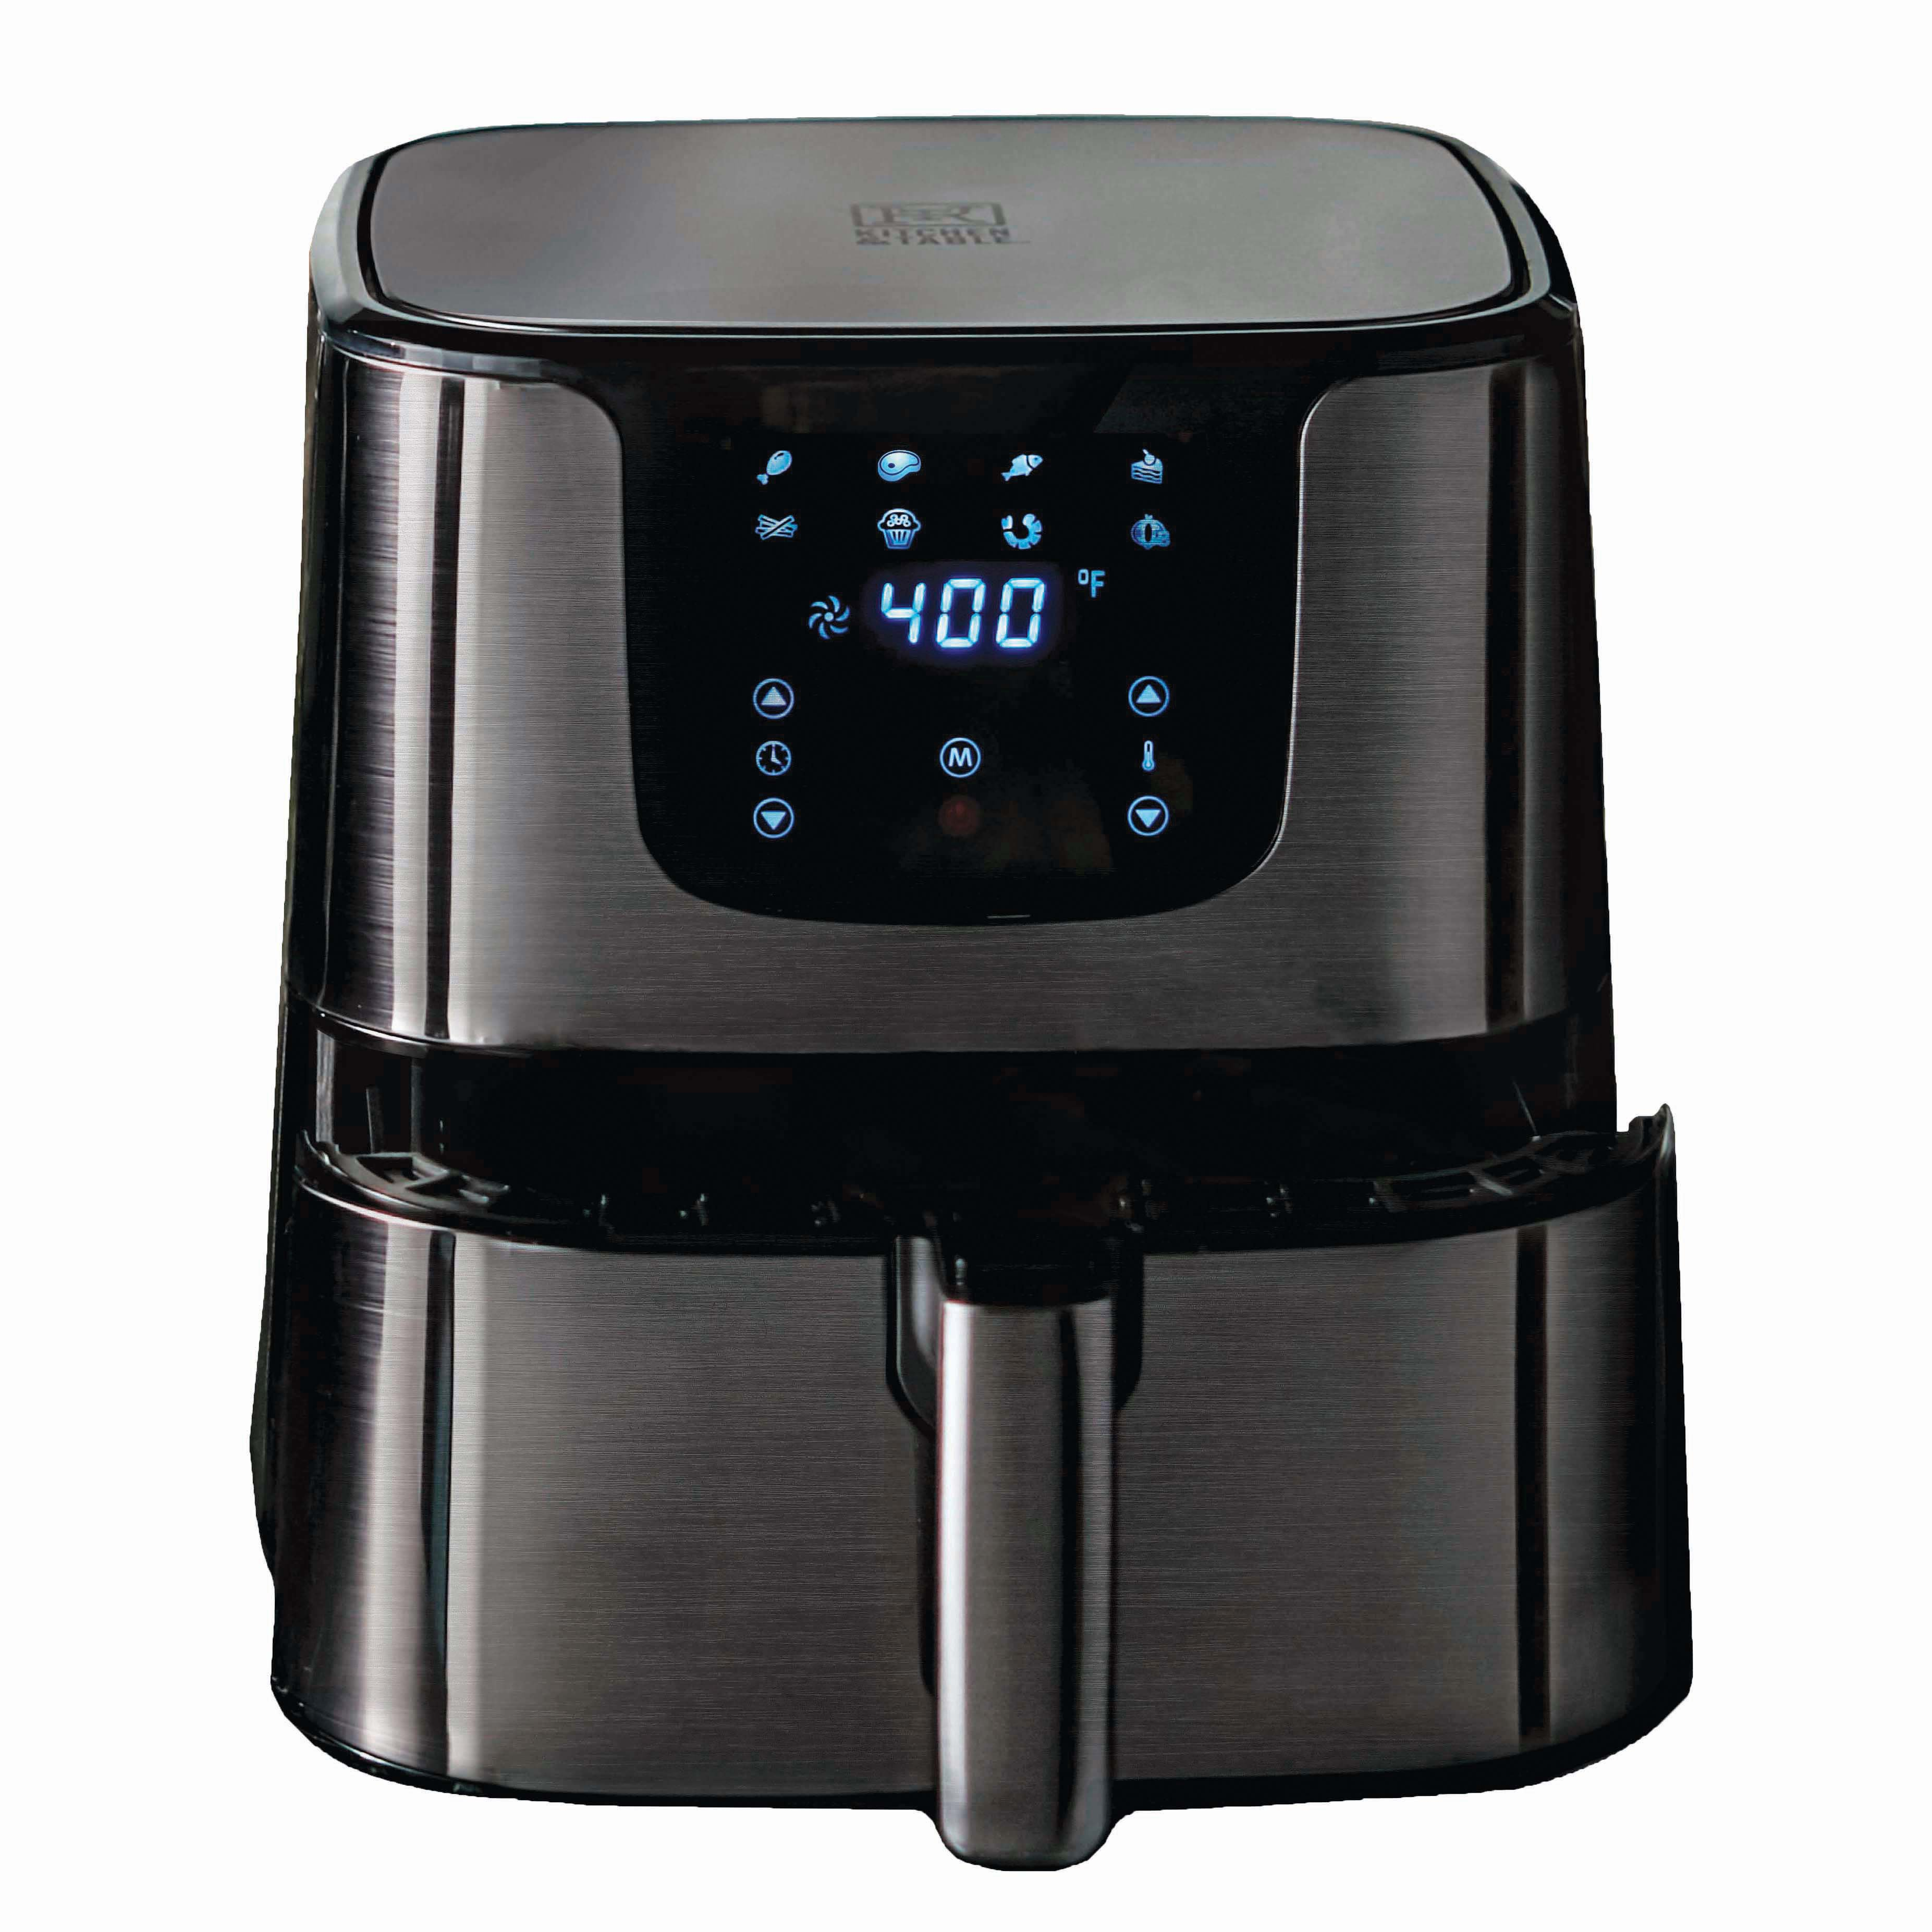 Kitchen Table Digital Air Fryer With Accessories Shop Appliances At H E B